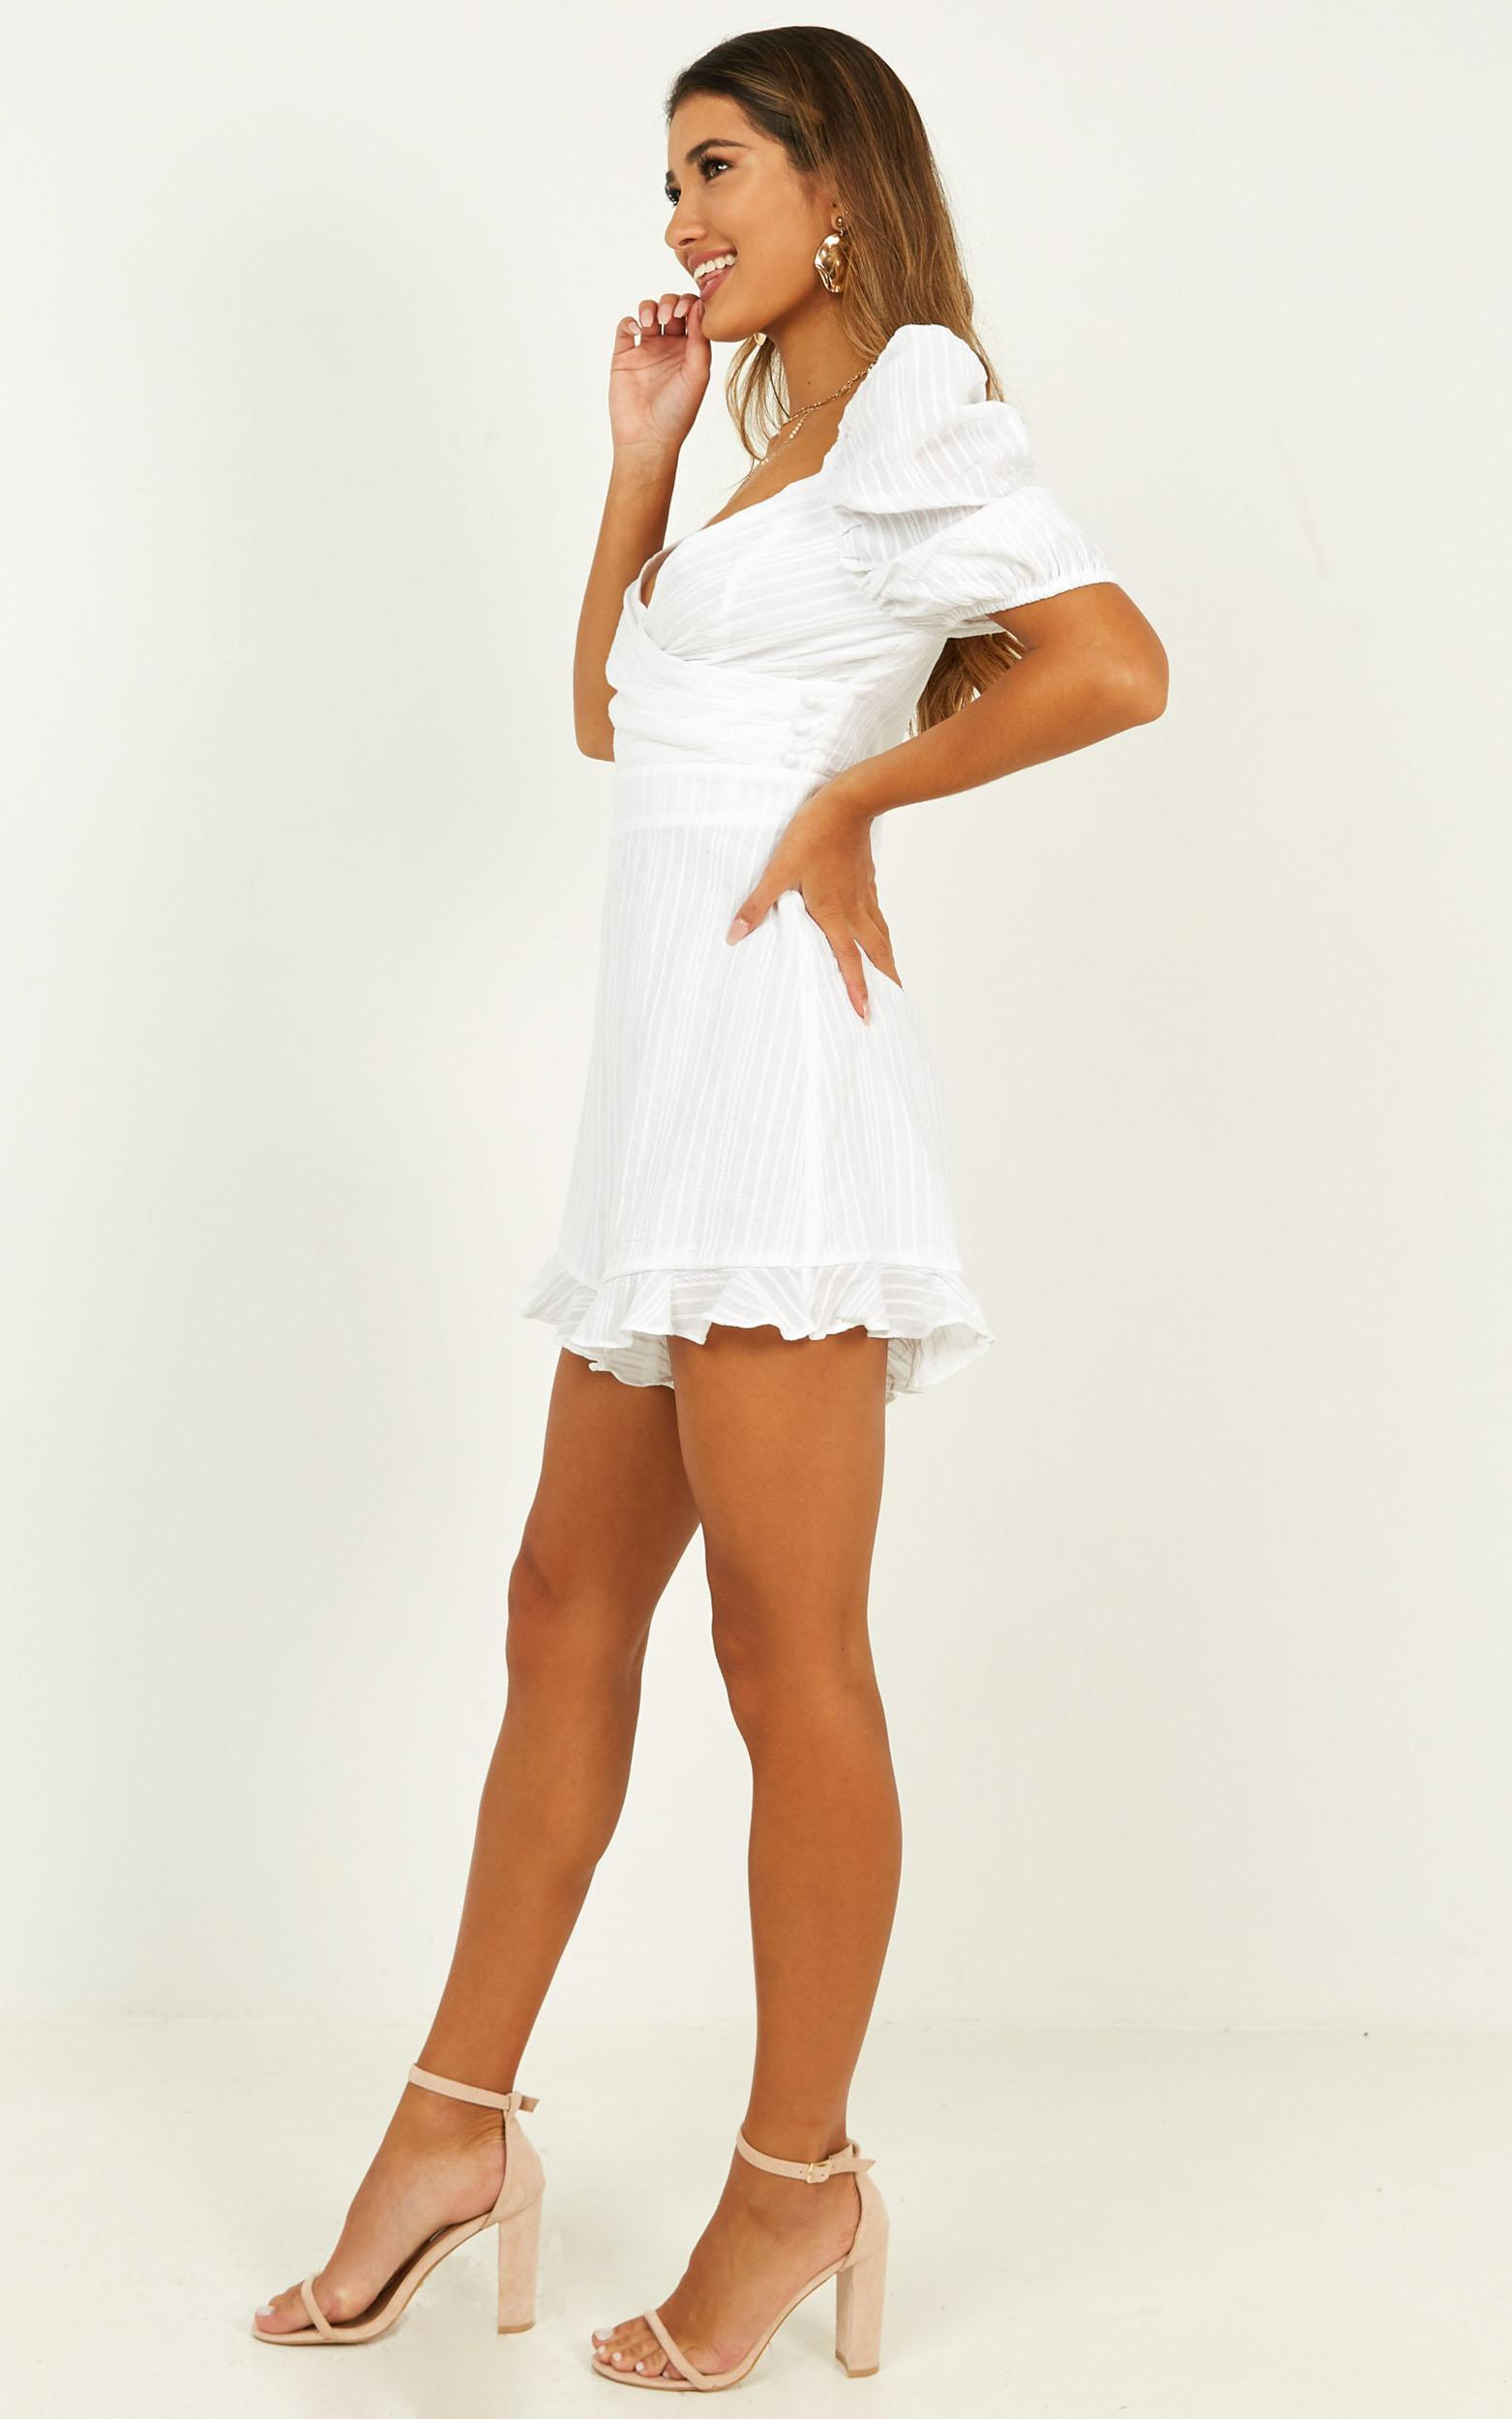 Pending Love Playsuit in white - 20 (XXXXL), White, hi-res image number null